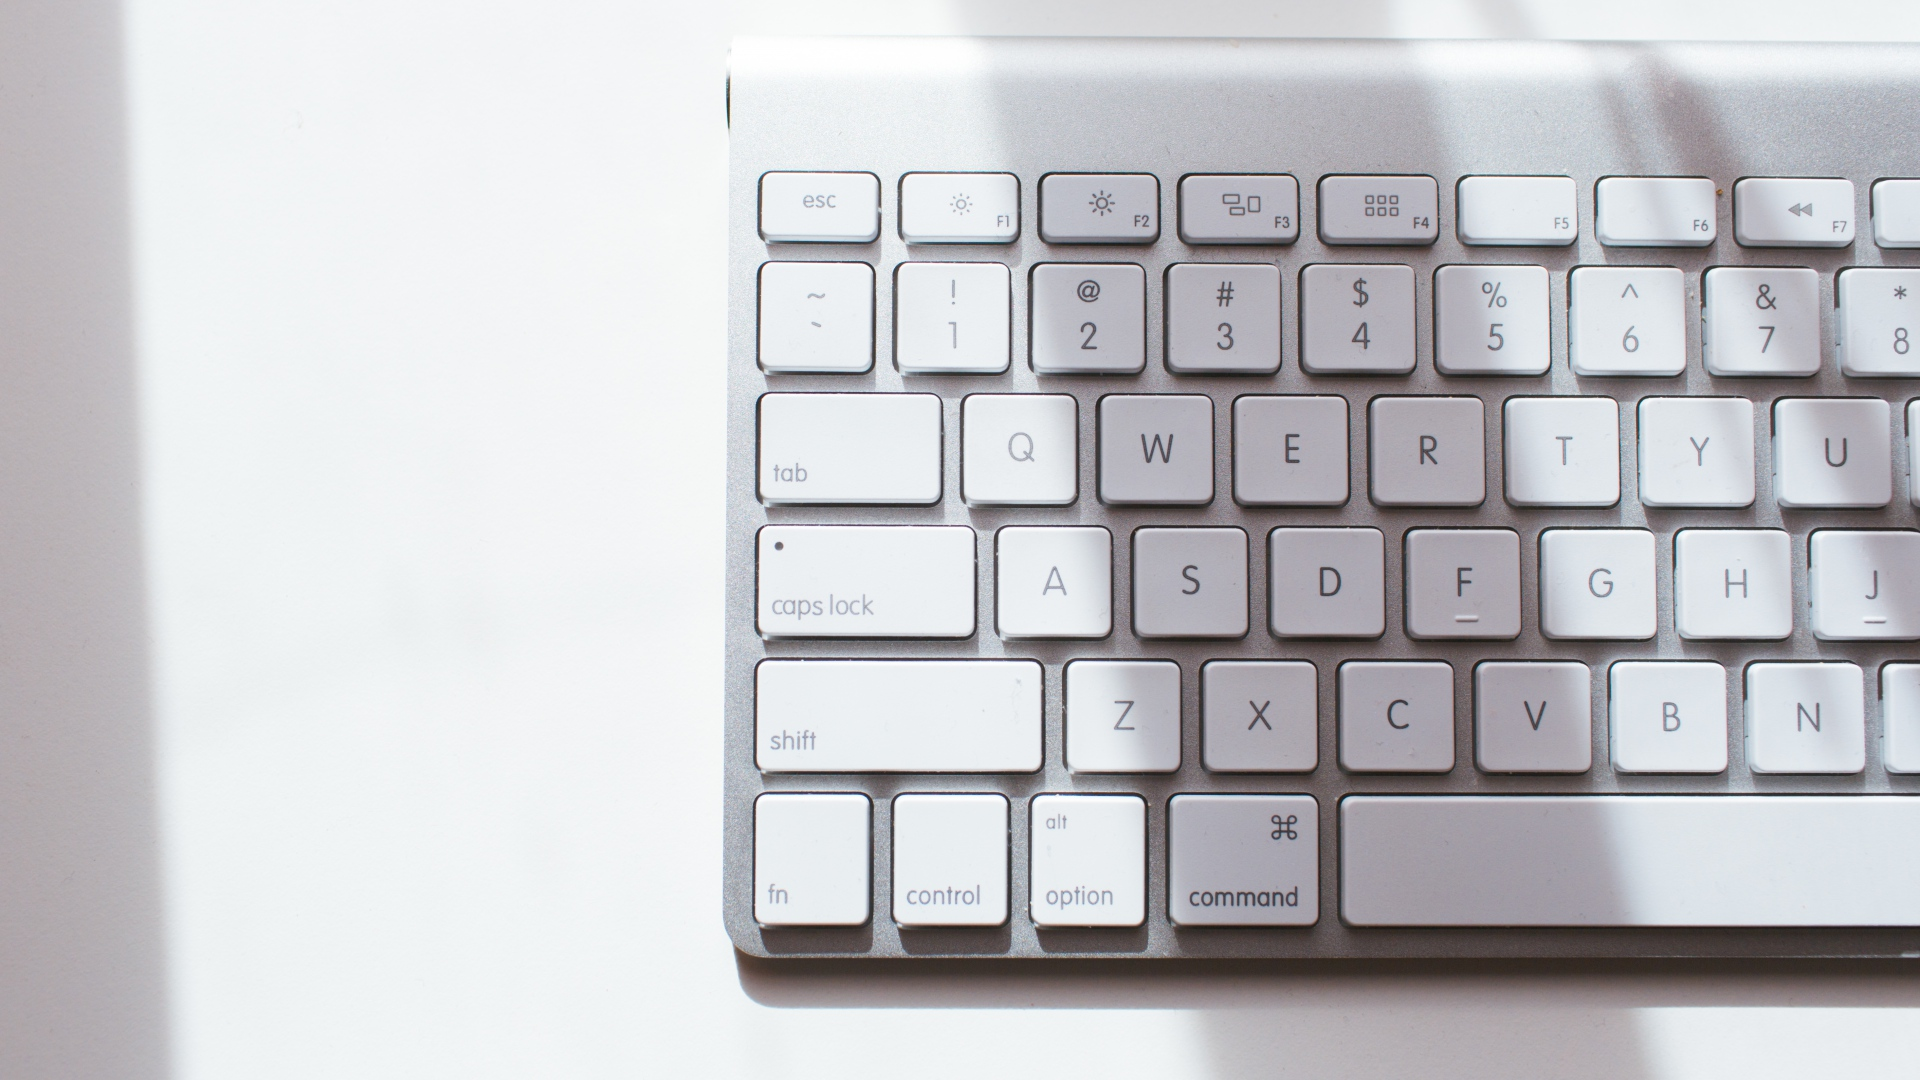 Keyboard Wallpaper Posted By John Anderson